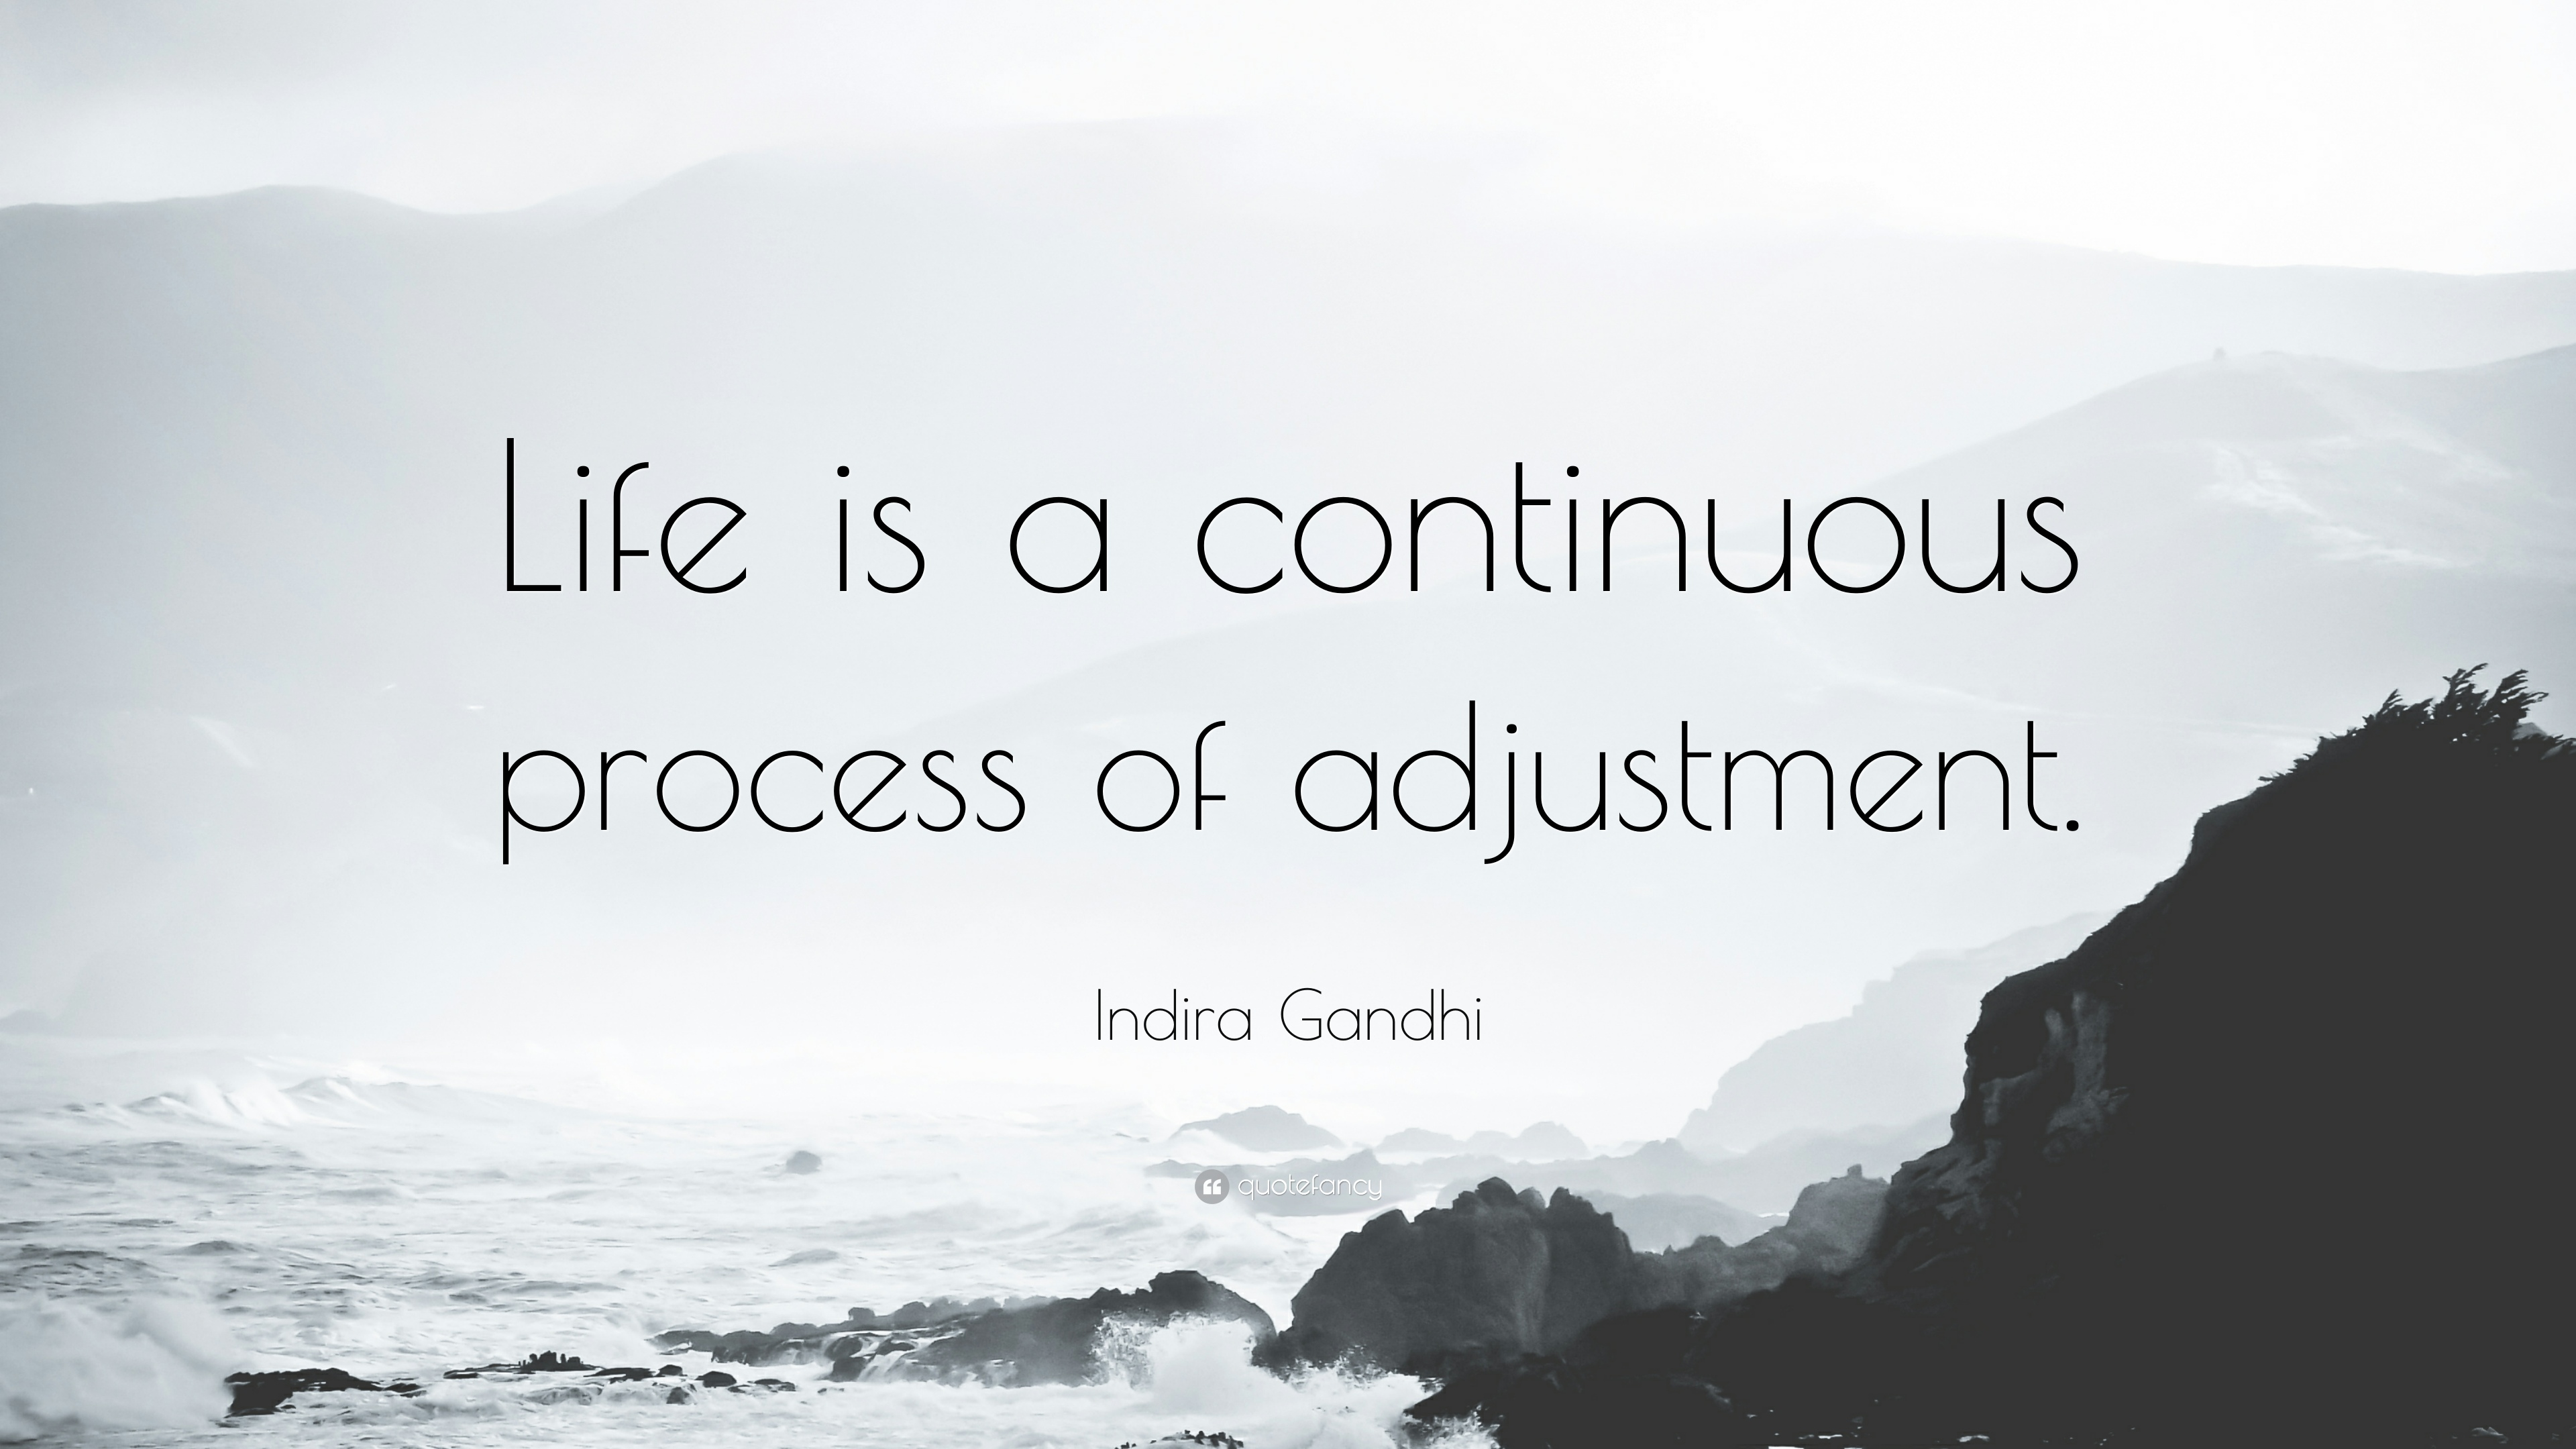 indira gandhi quote life is a continuous process of adjustment